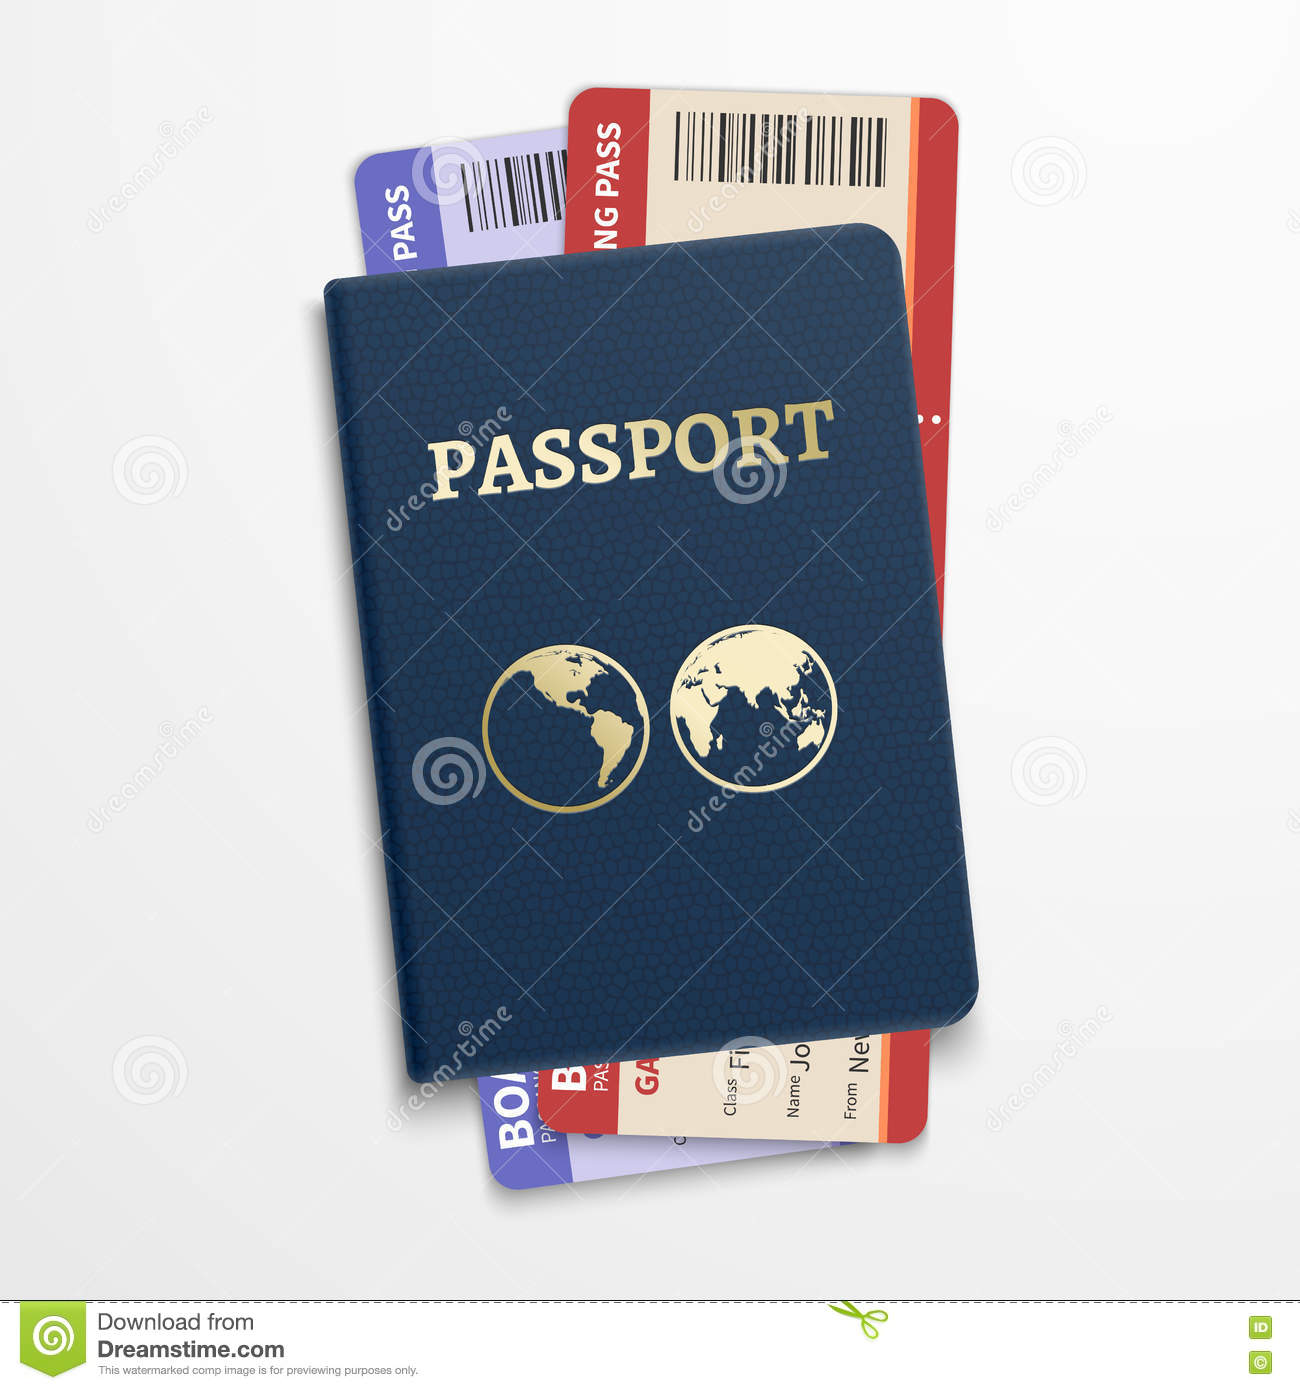 Passport with airline tickets. International tourism travelling concept